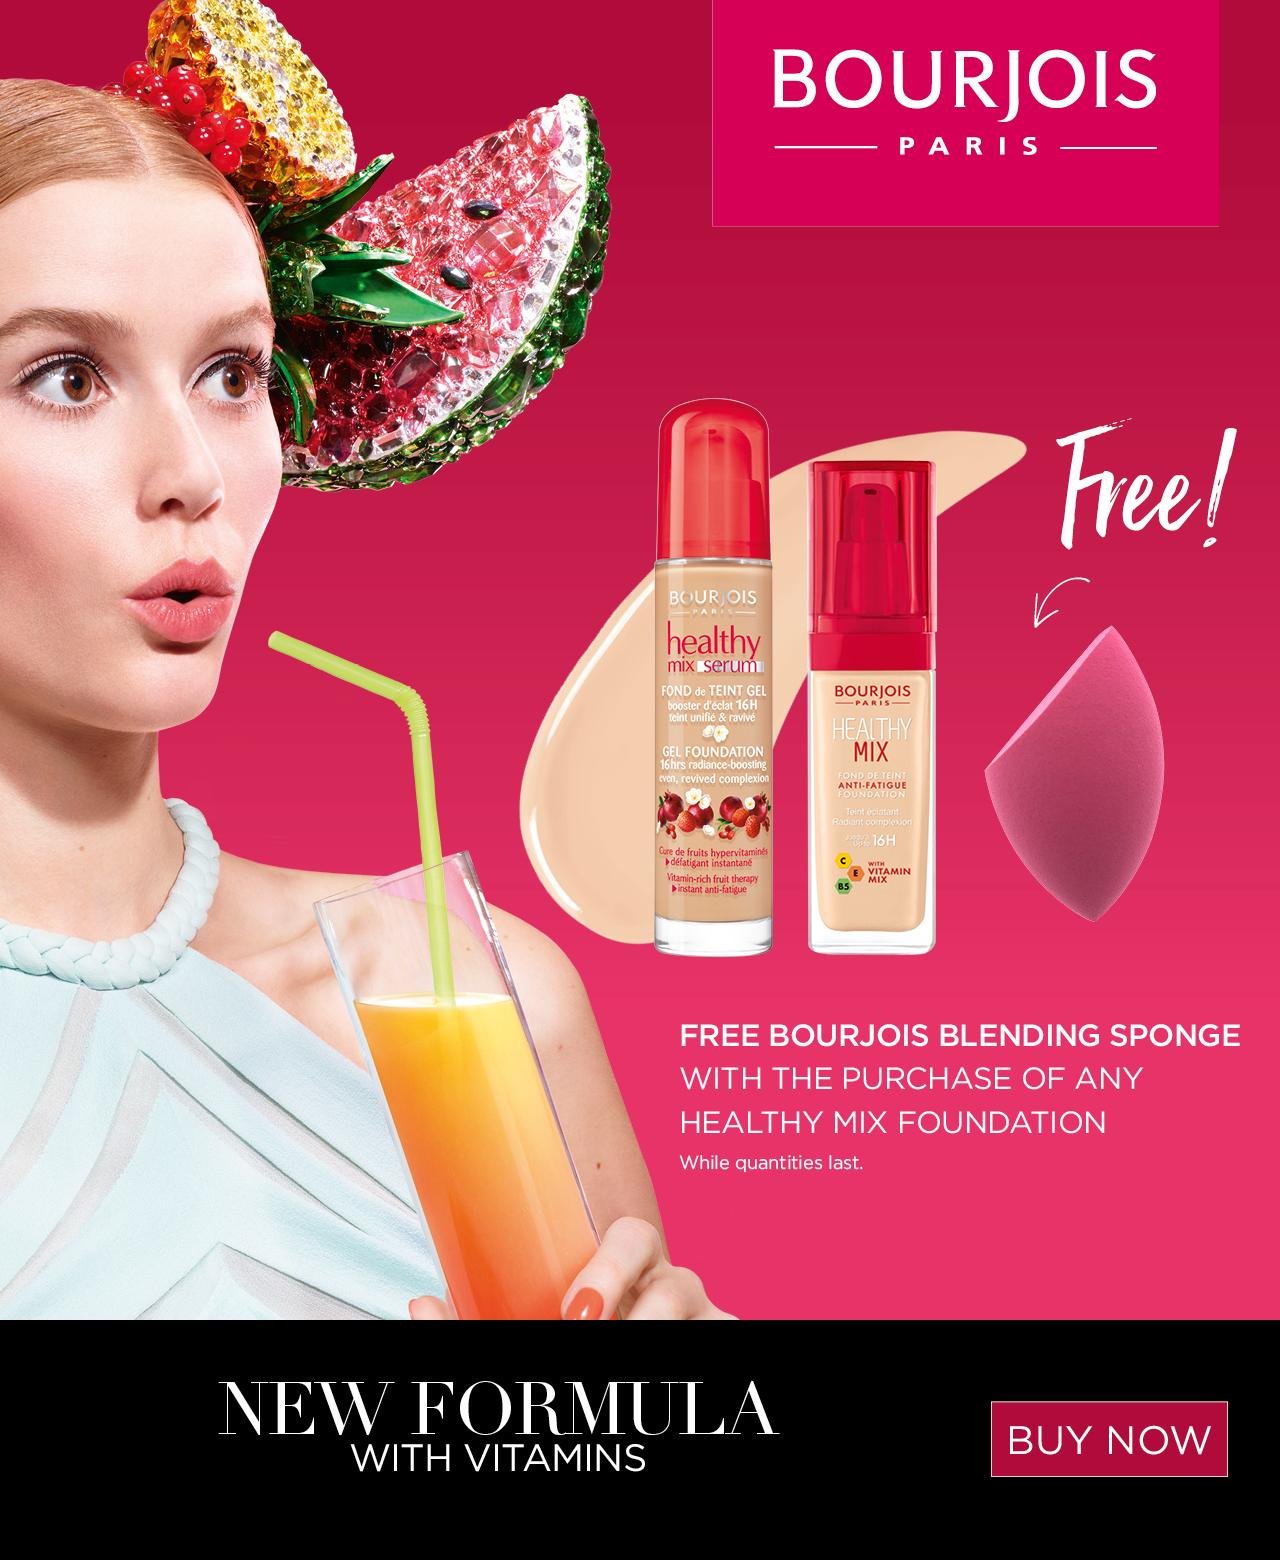 Free Bourjois blending sponge with the purchase of any healthy mix foundation